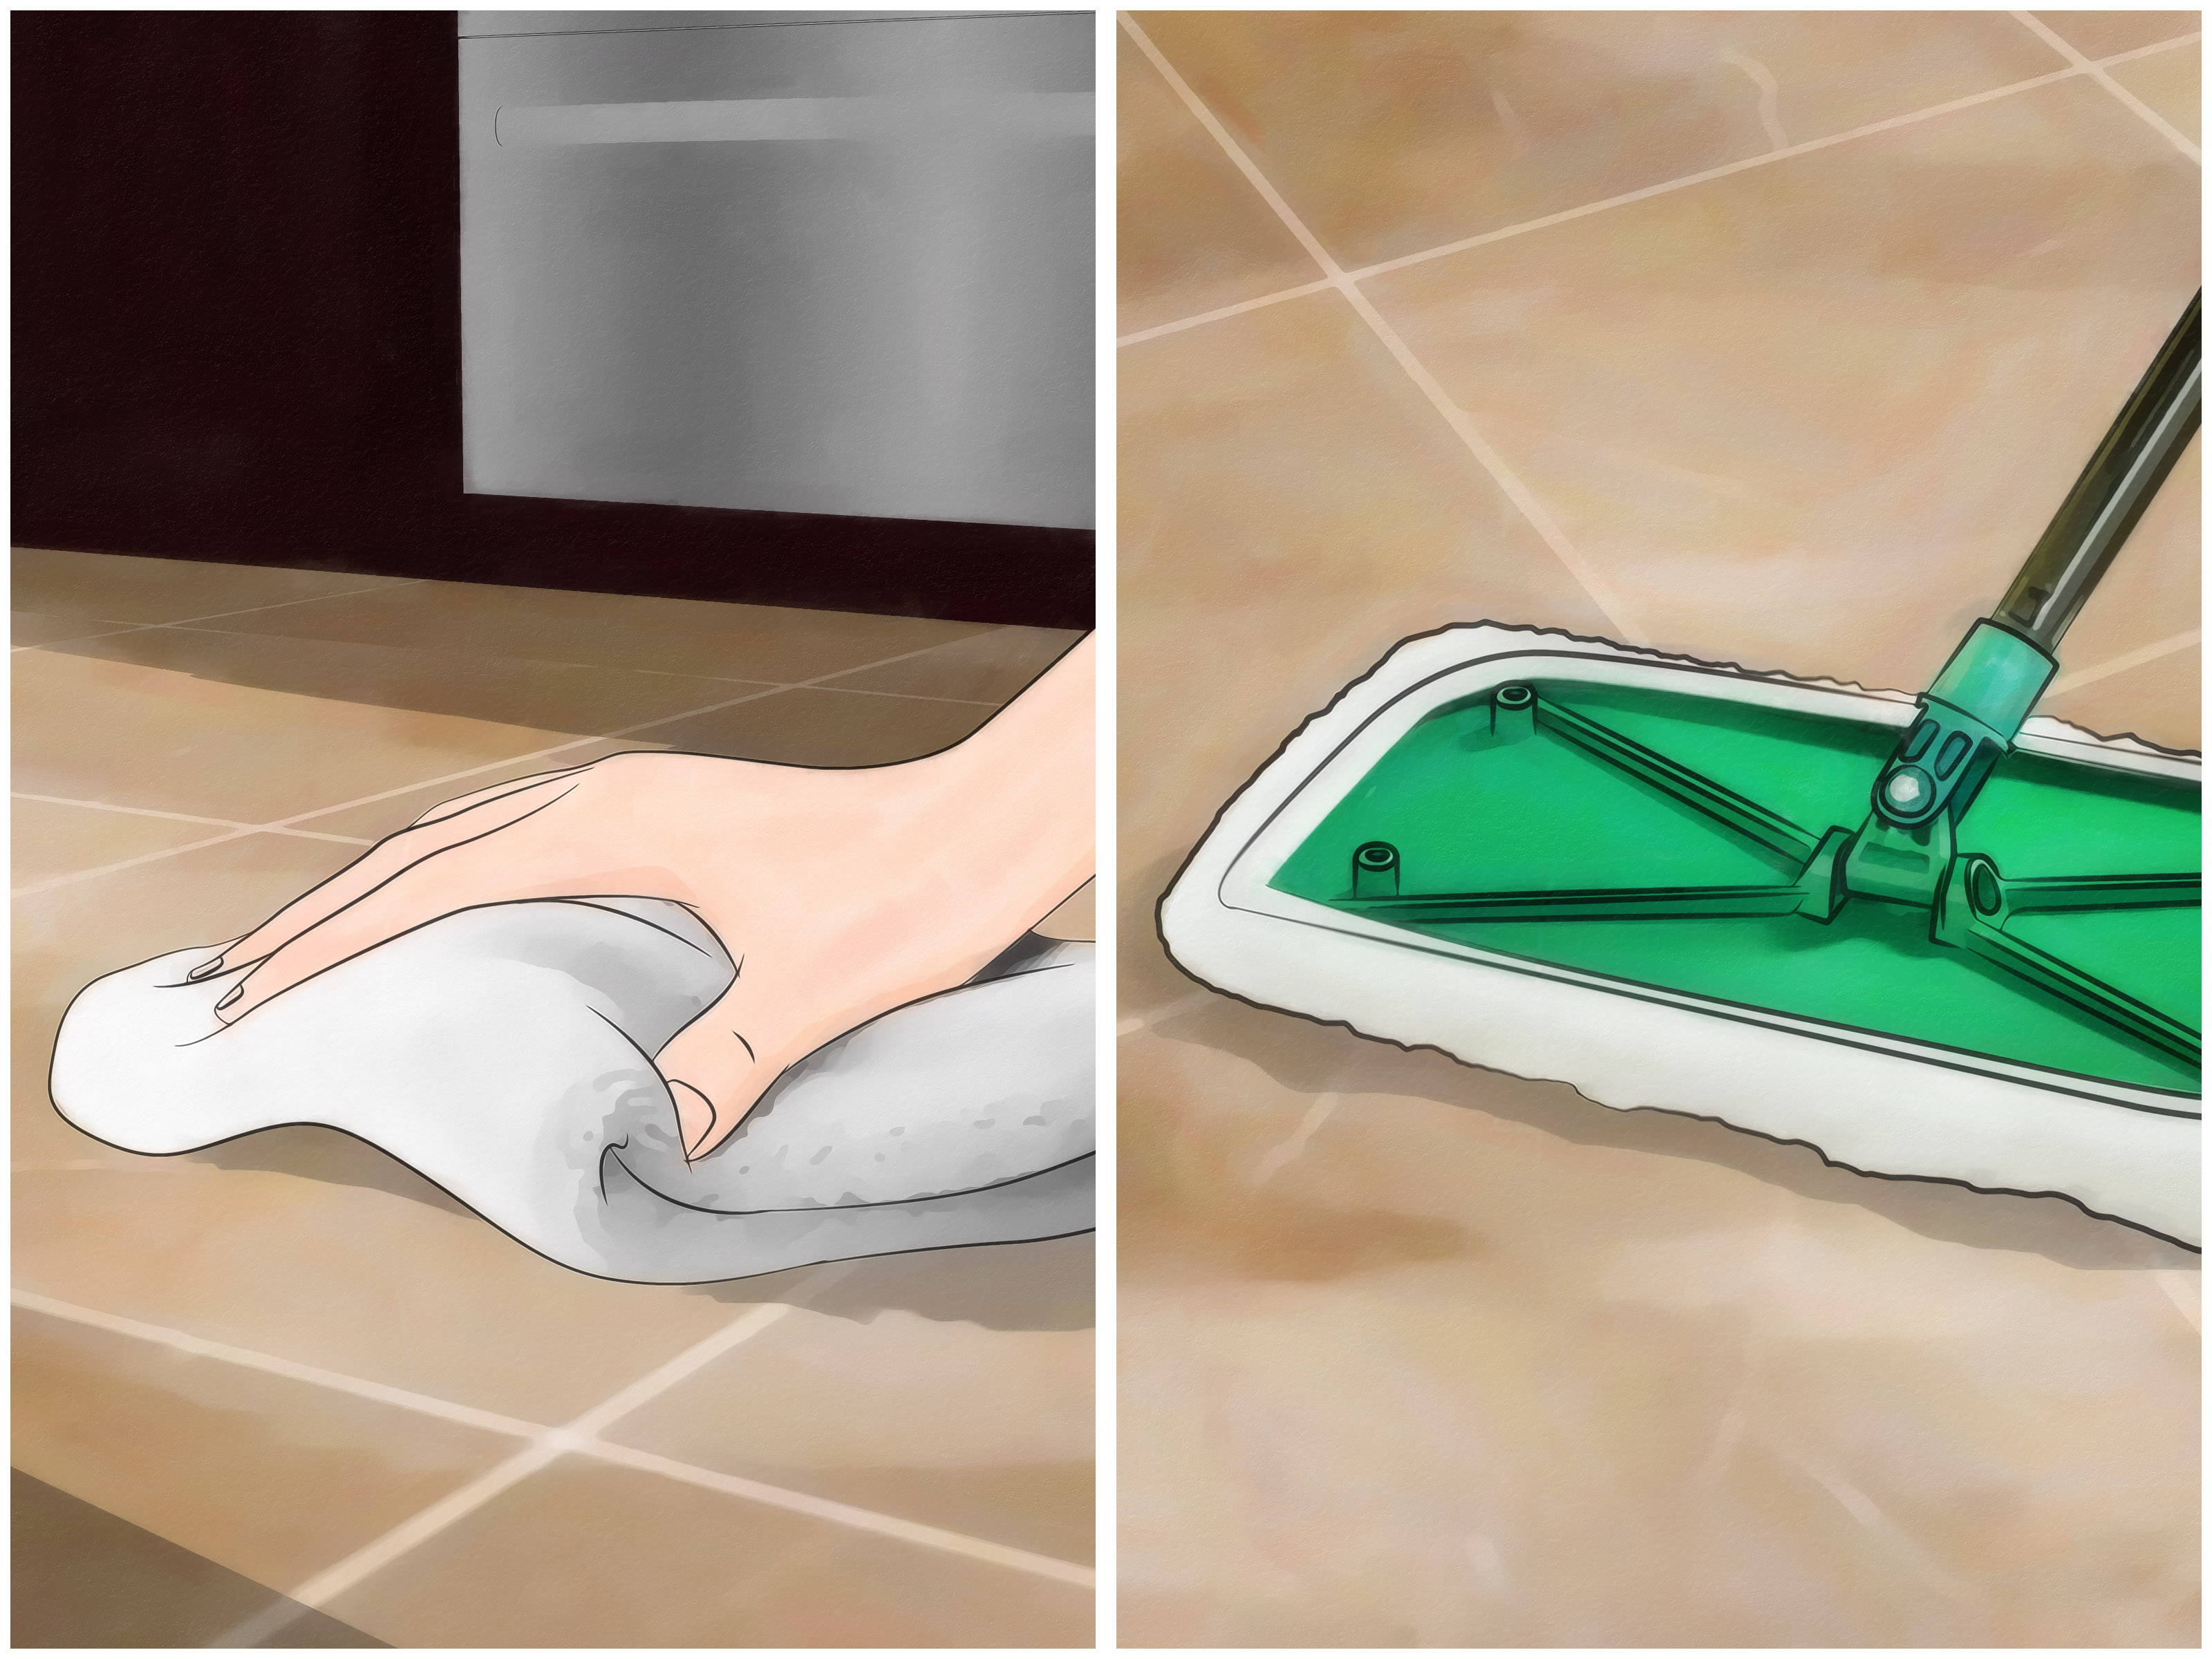 Best Way To Clean Bathroom 4 Ways To Clean Grout Between Floor Tiles Wikihow